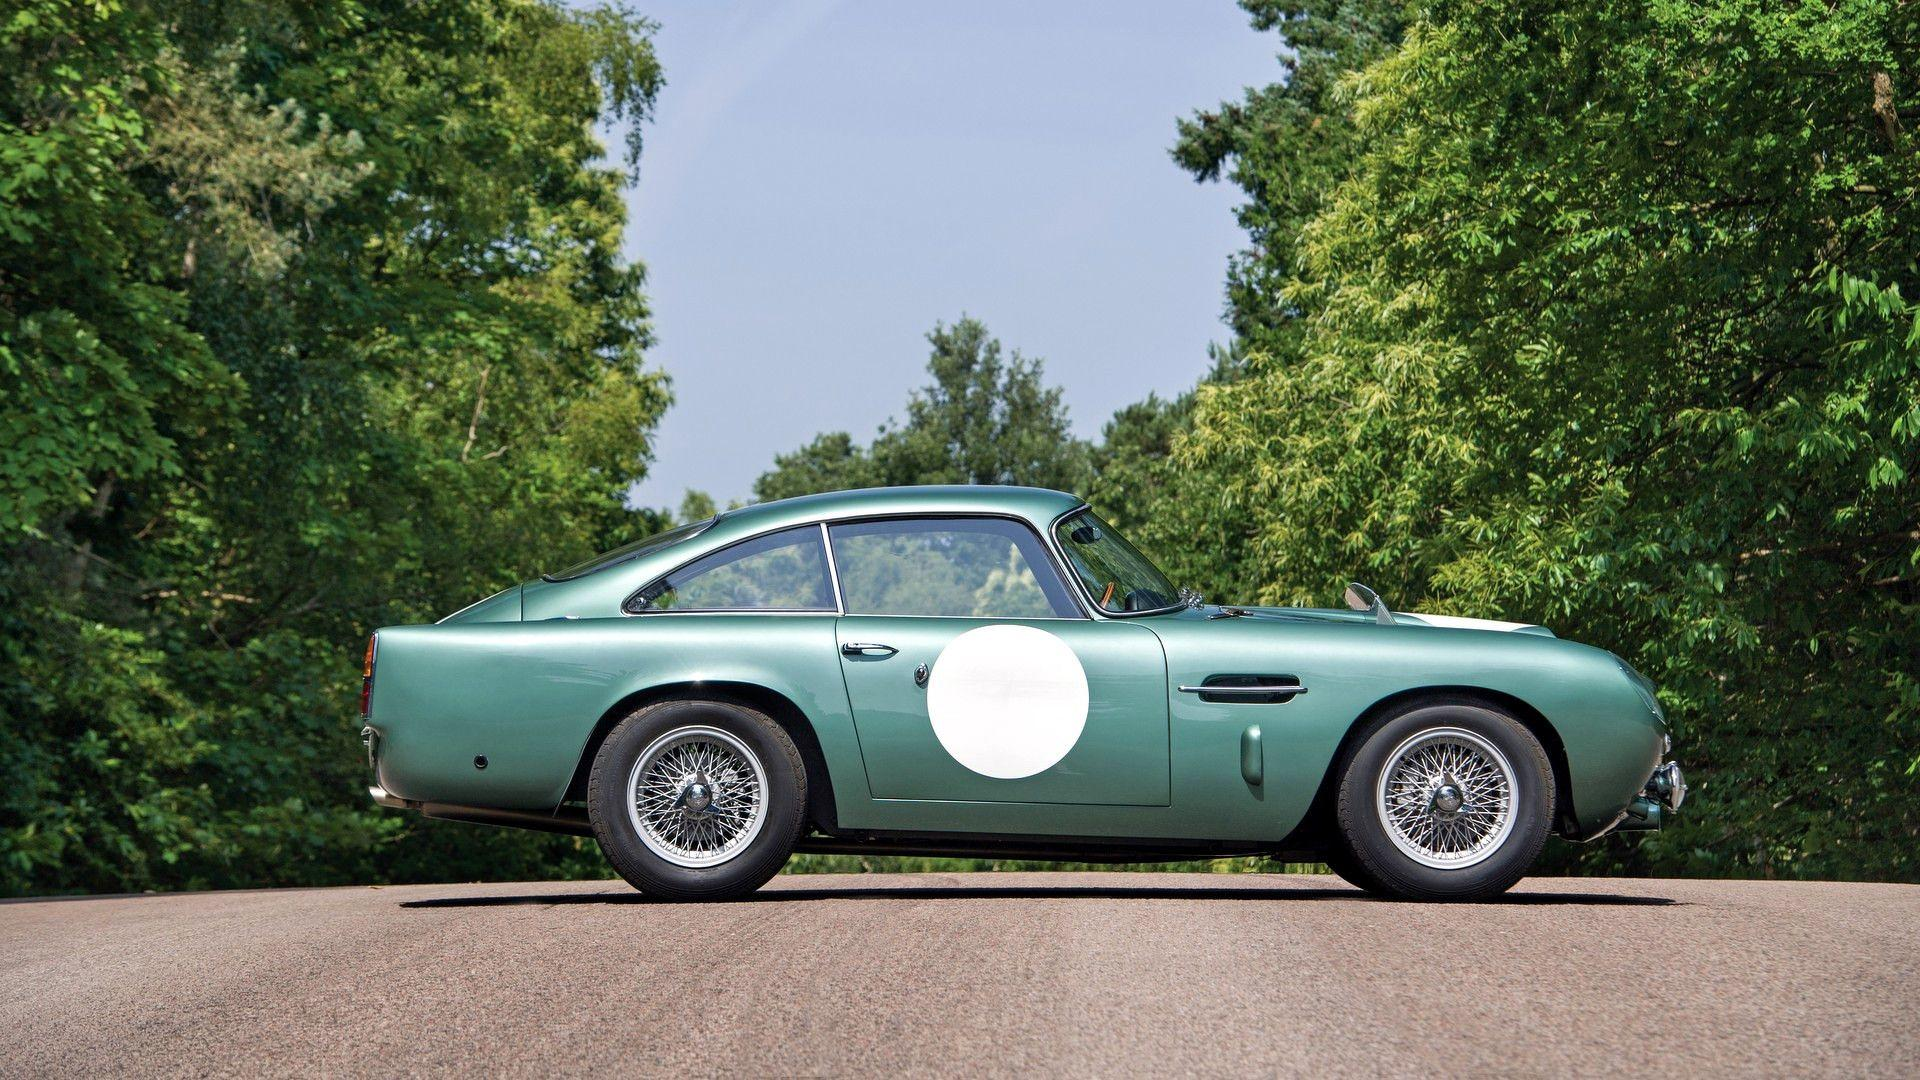 1959-aston-martin-db4gt-copyright-tim-scott-rm-sothebys (4)